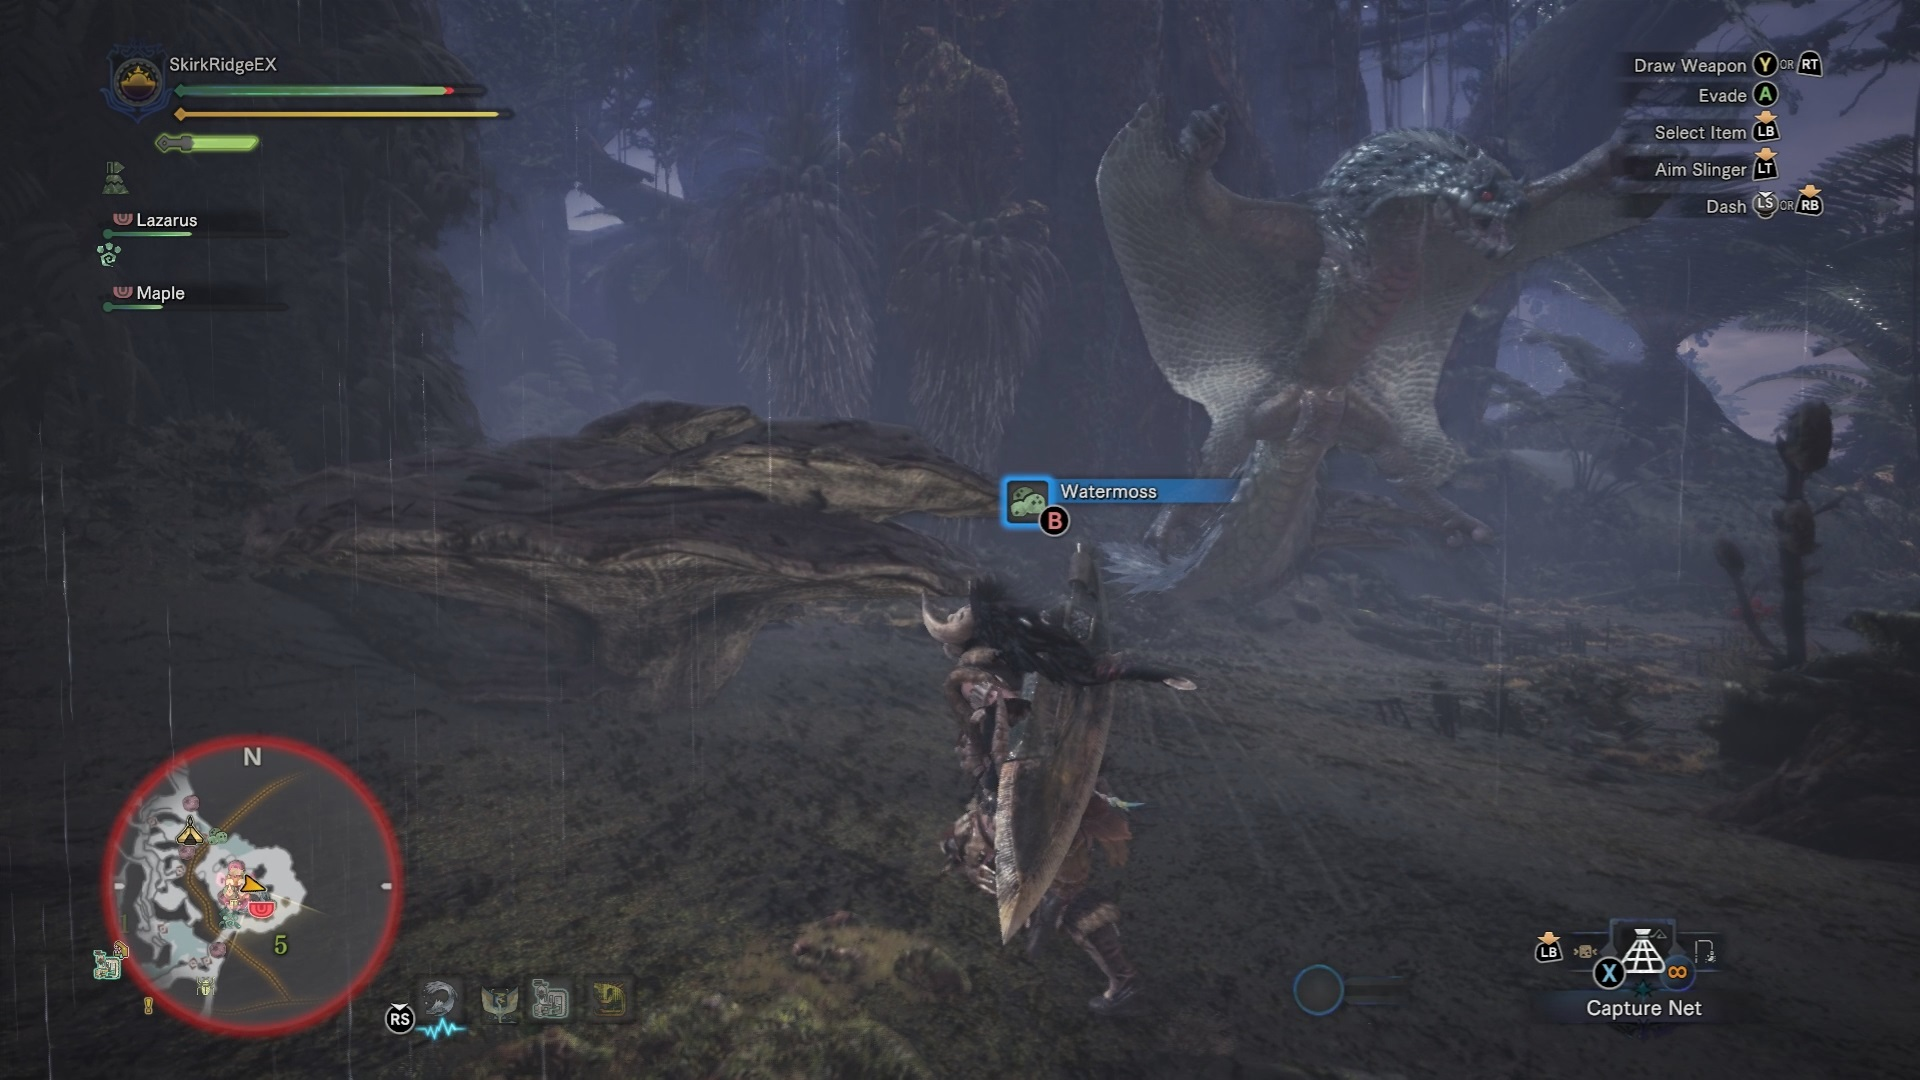 Tobi-Kadachi glides to strike the hunter.